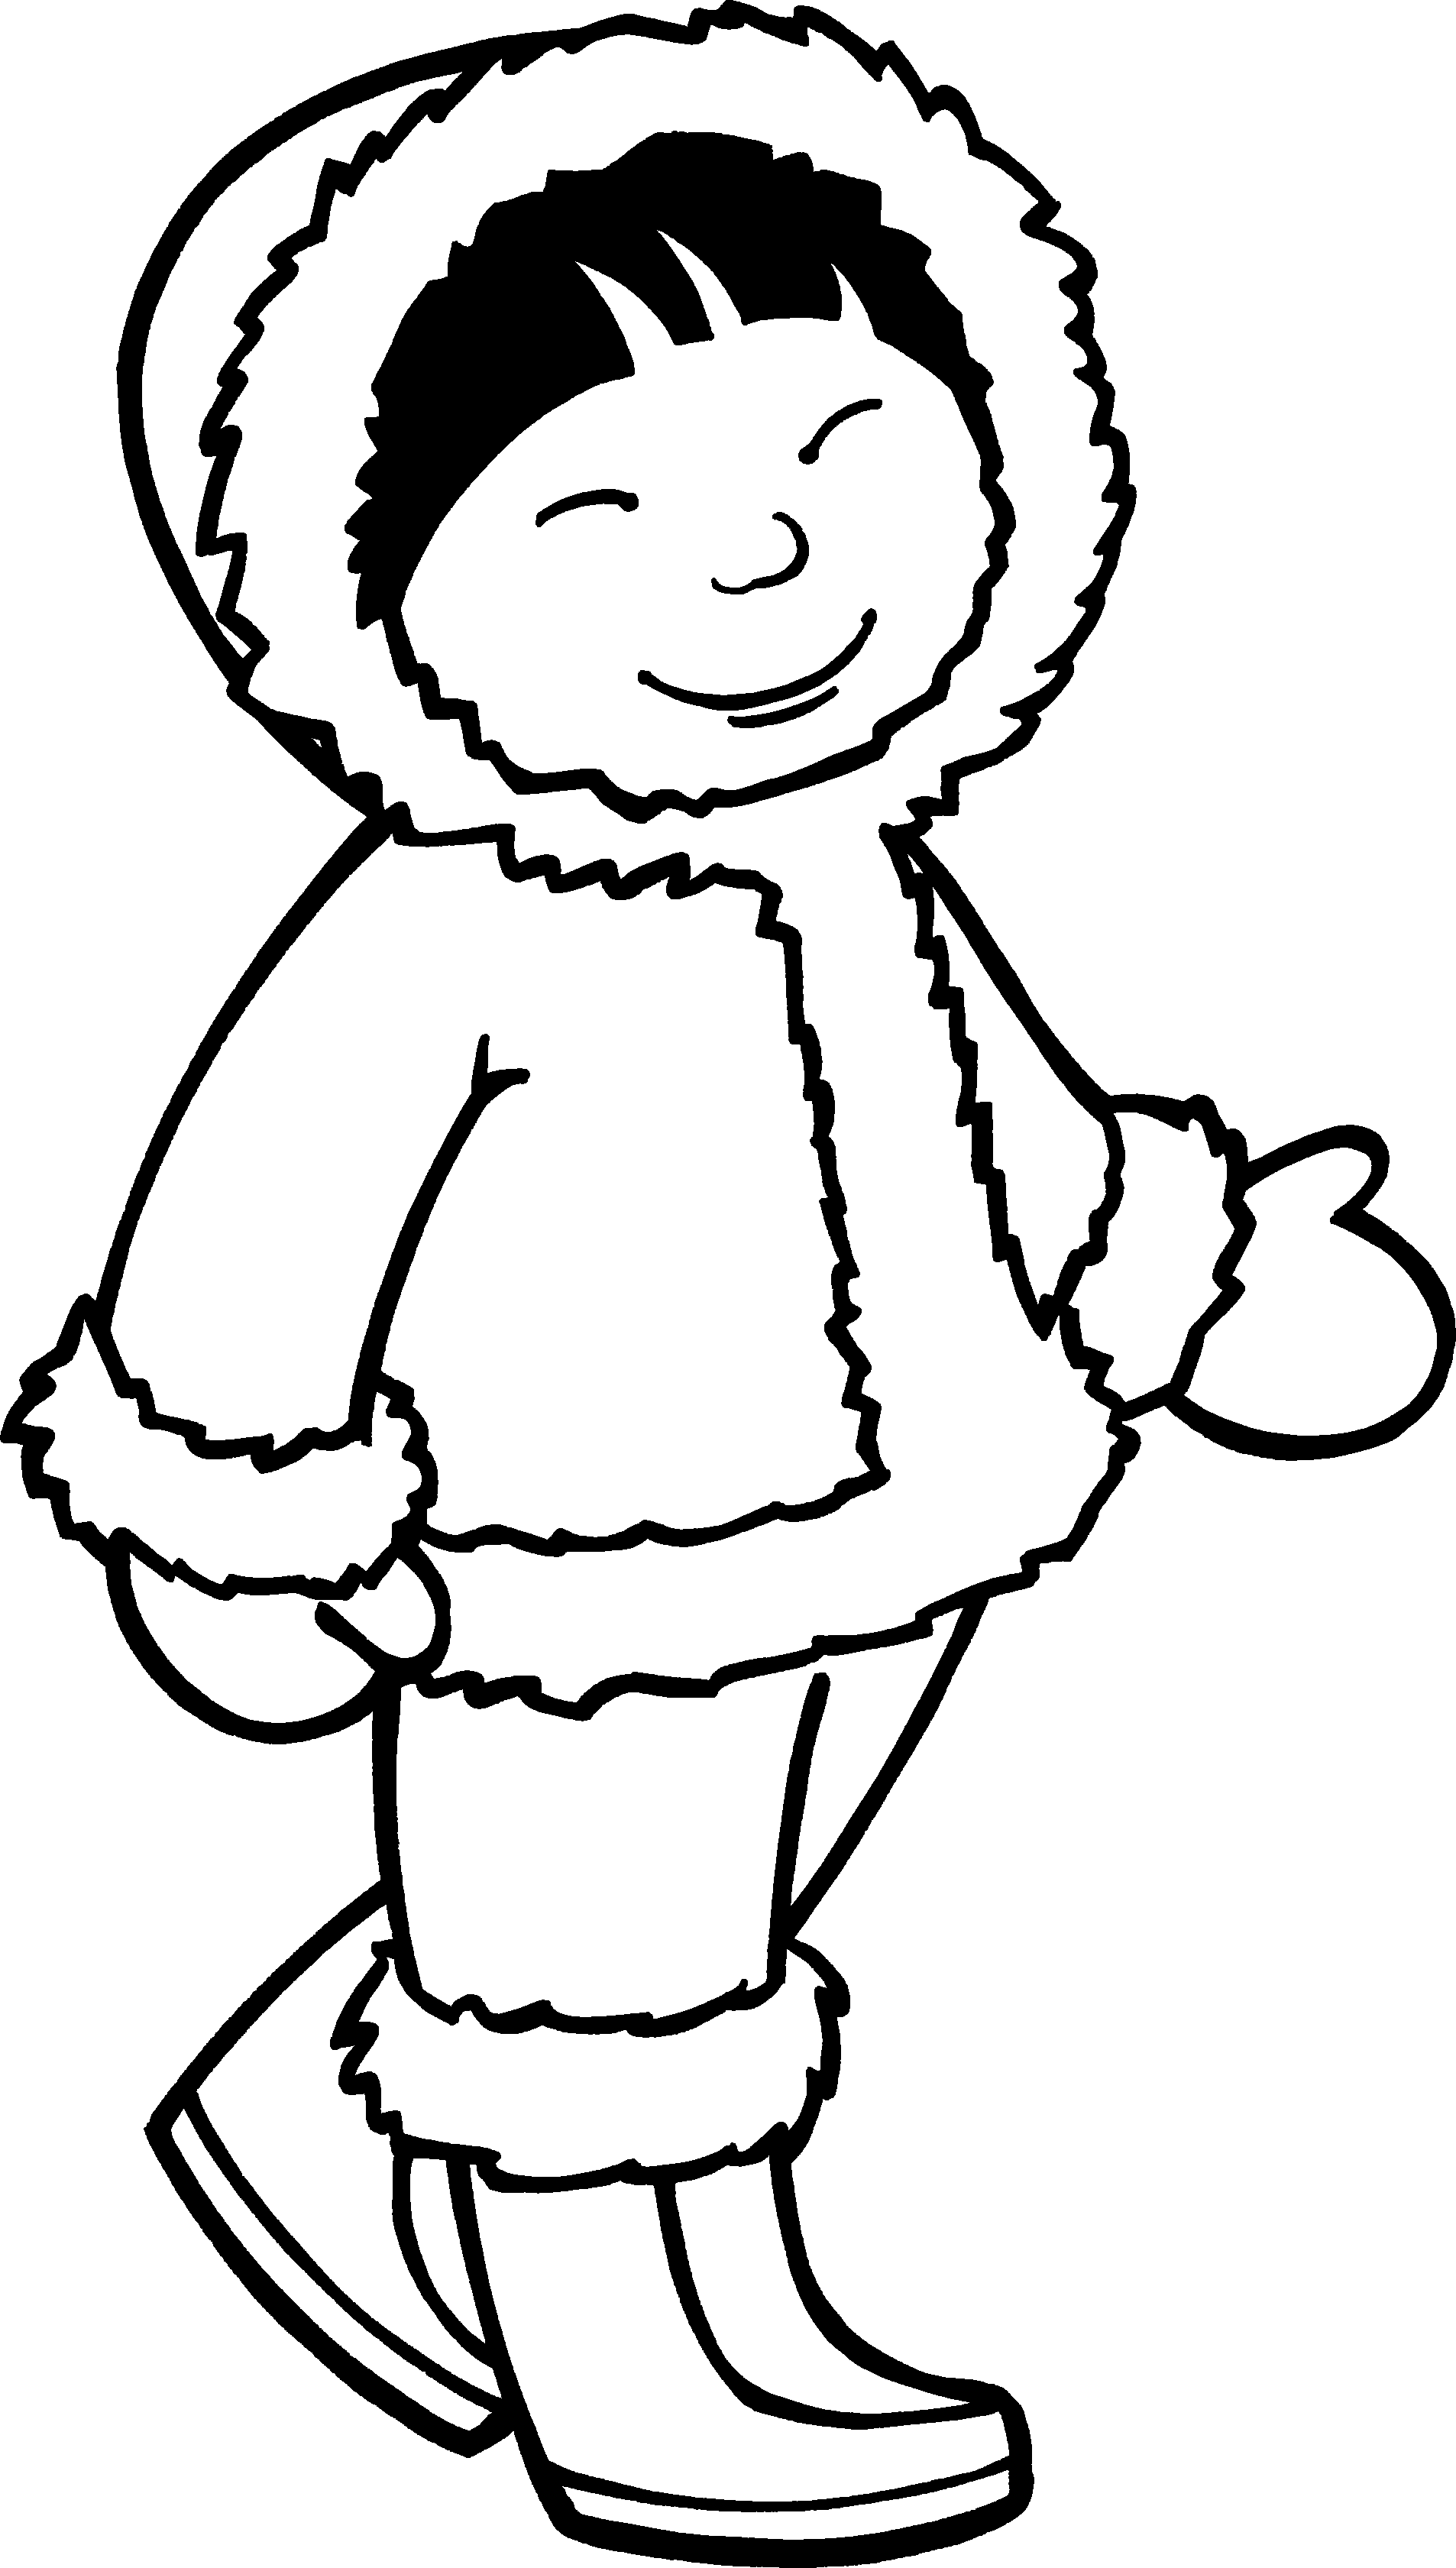 coloring pages eskimo - eskimo girl coloring page zima pinterest girls kids